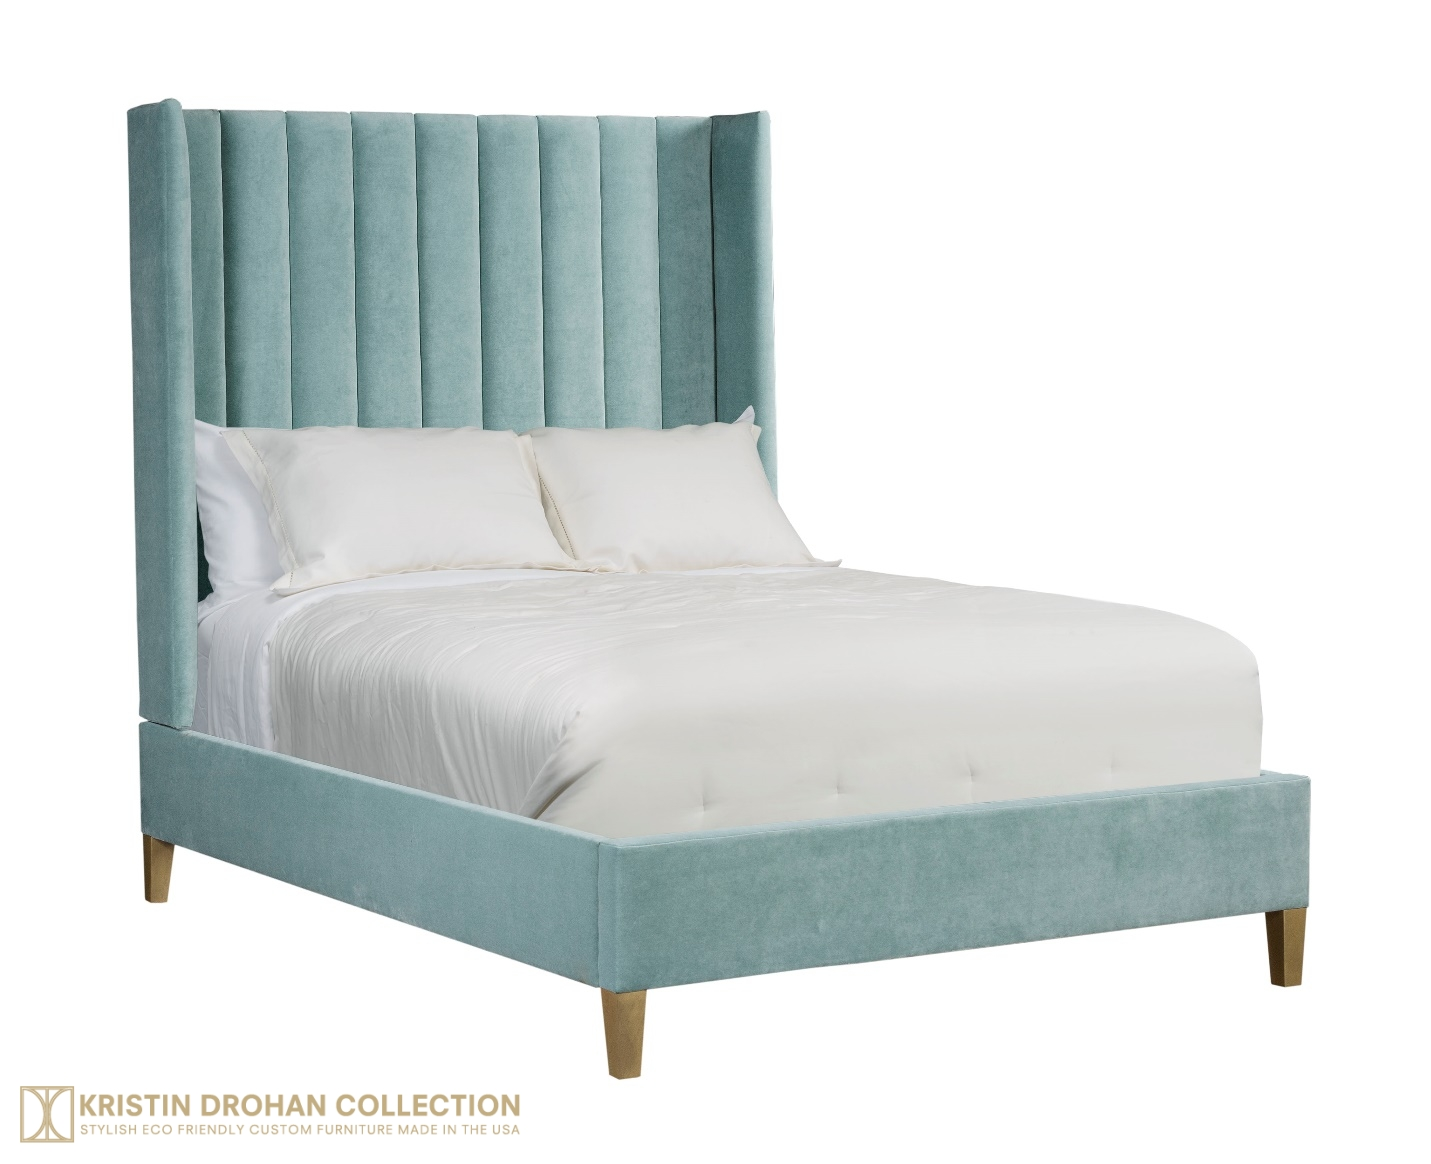 Bronie channel-tufted upholstered bed